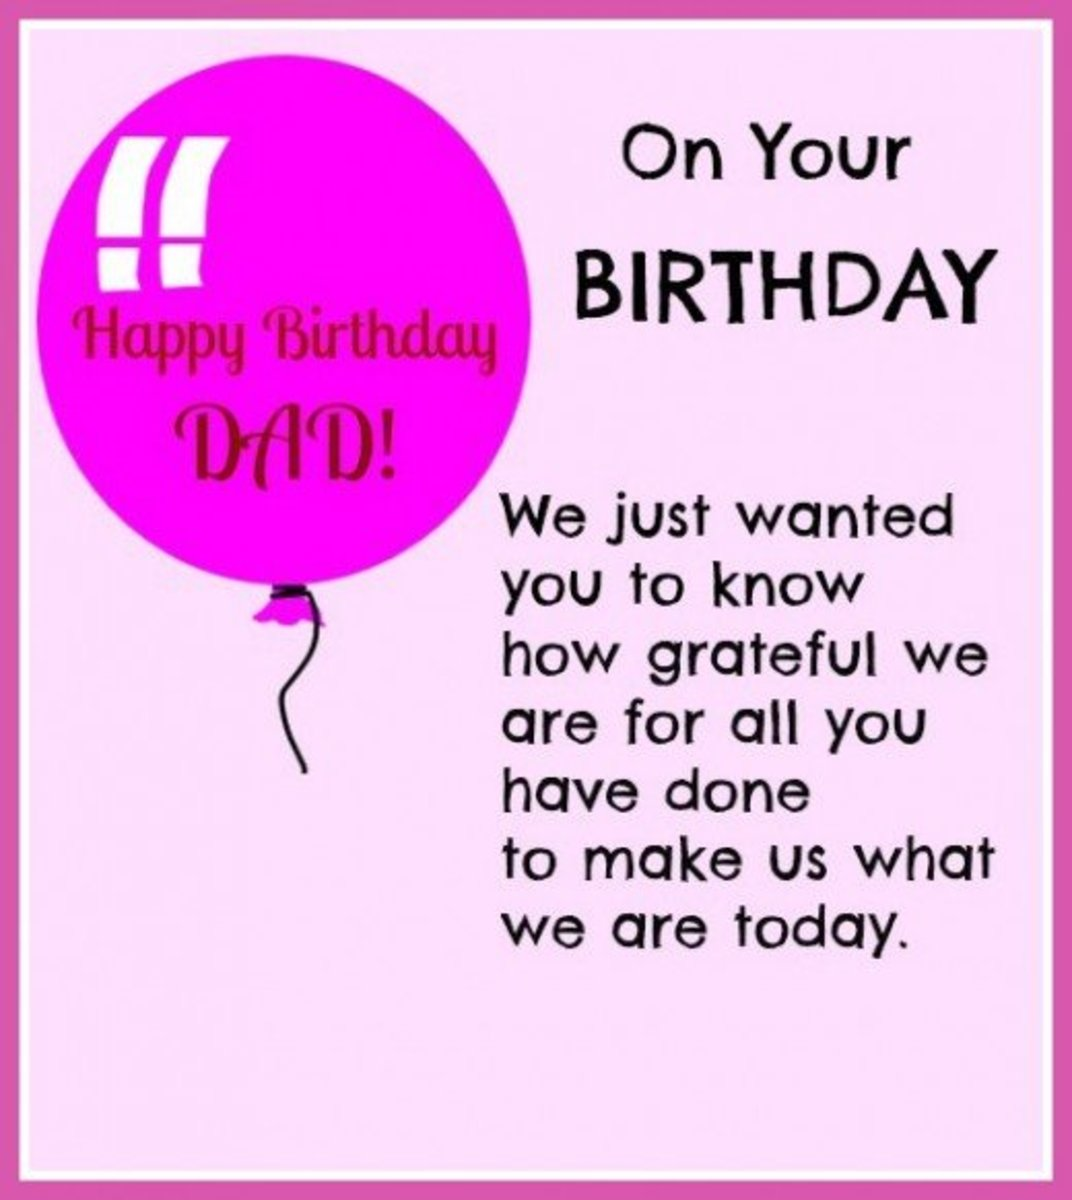 HAPPY BIRTHDAY DAD   Free Birthday Greetings, Cards & Messages